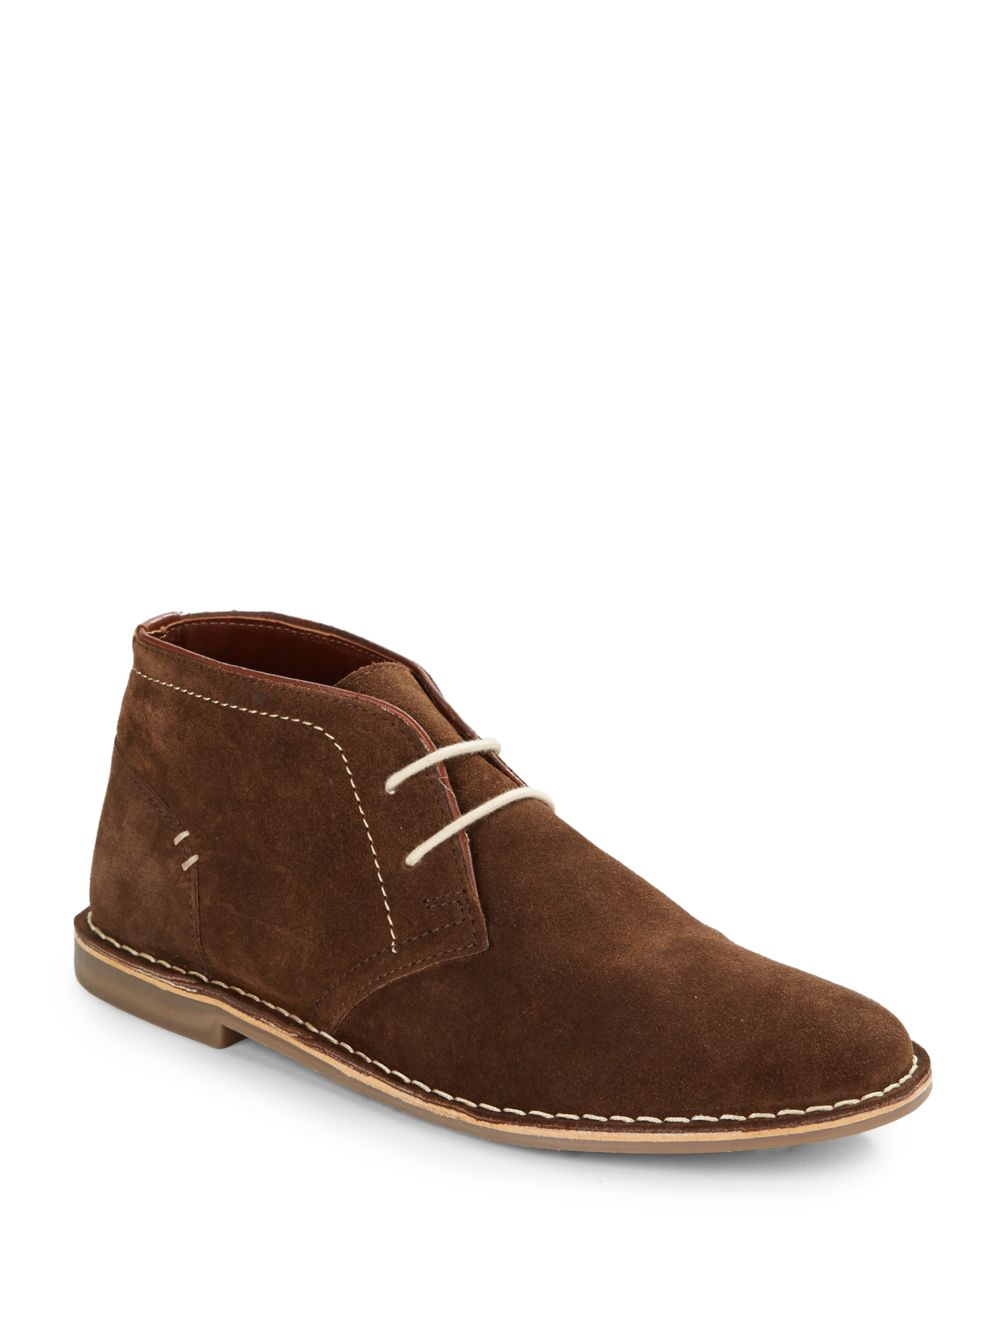 steve madden durvish suede chukka boots in brown for